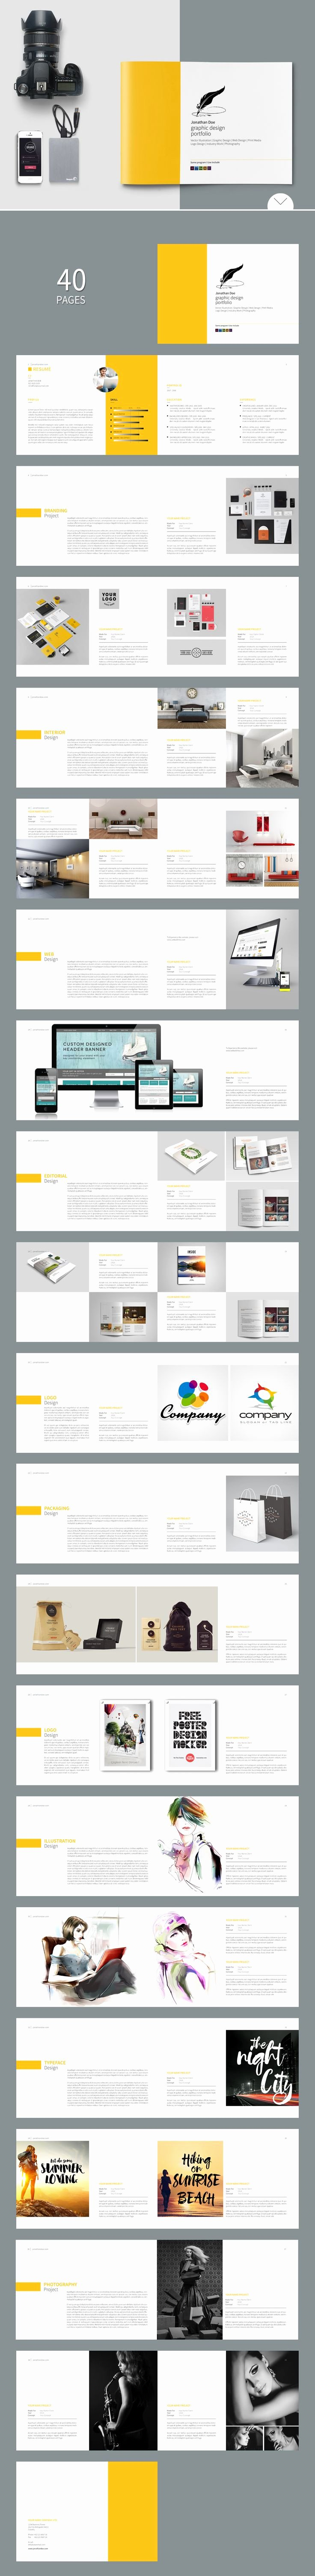 Indesign Portfolio Template Free Unique Free Indesign Report Templates Graphic Design Print